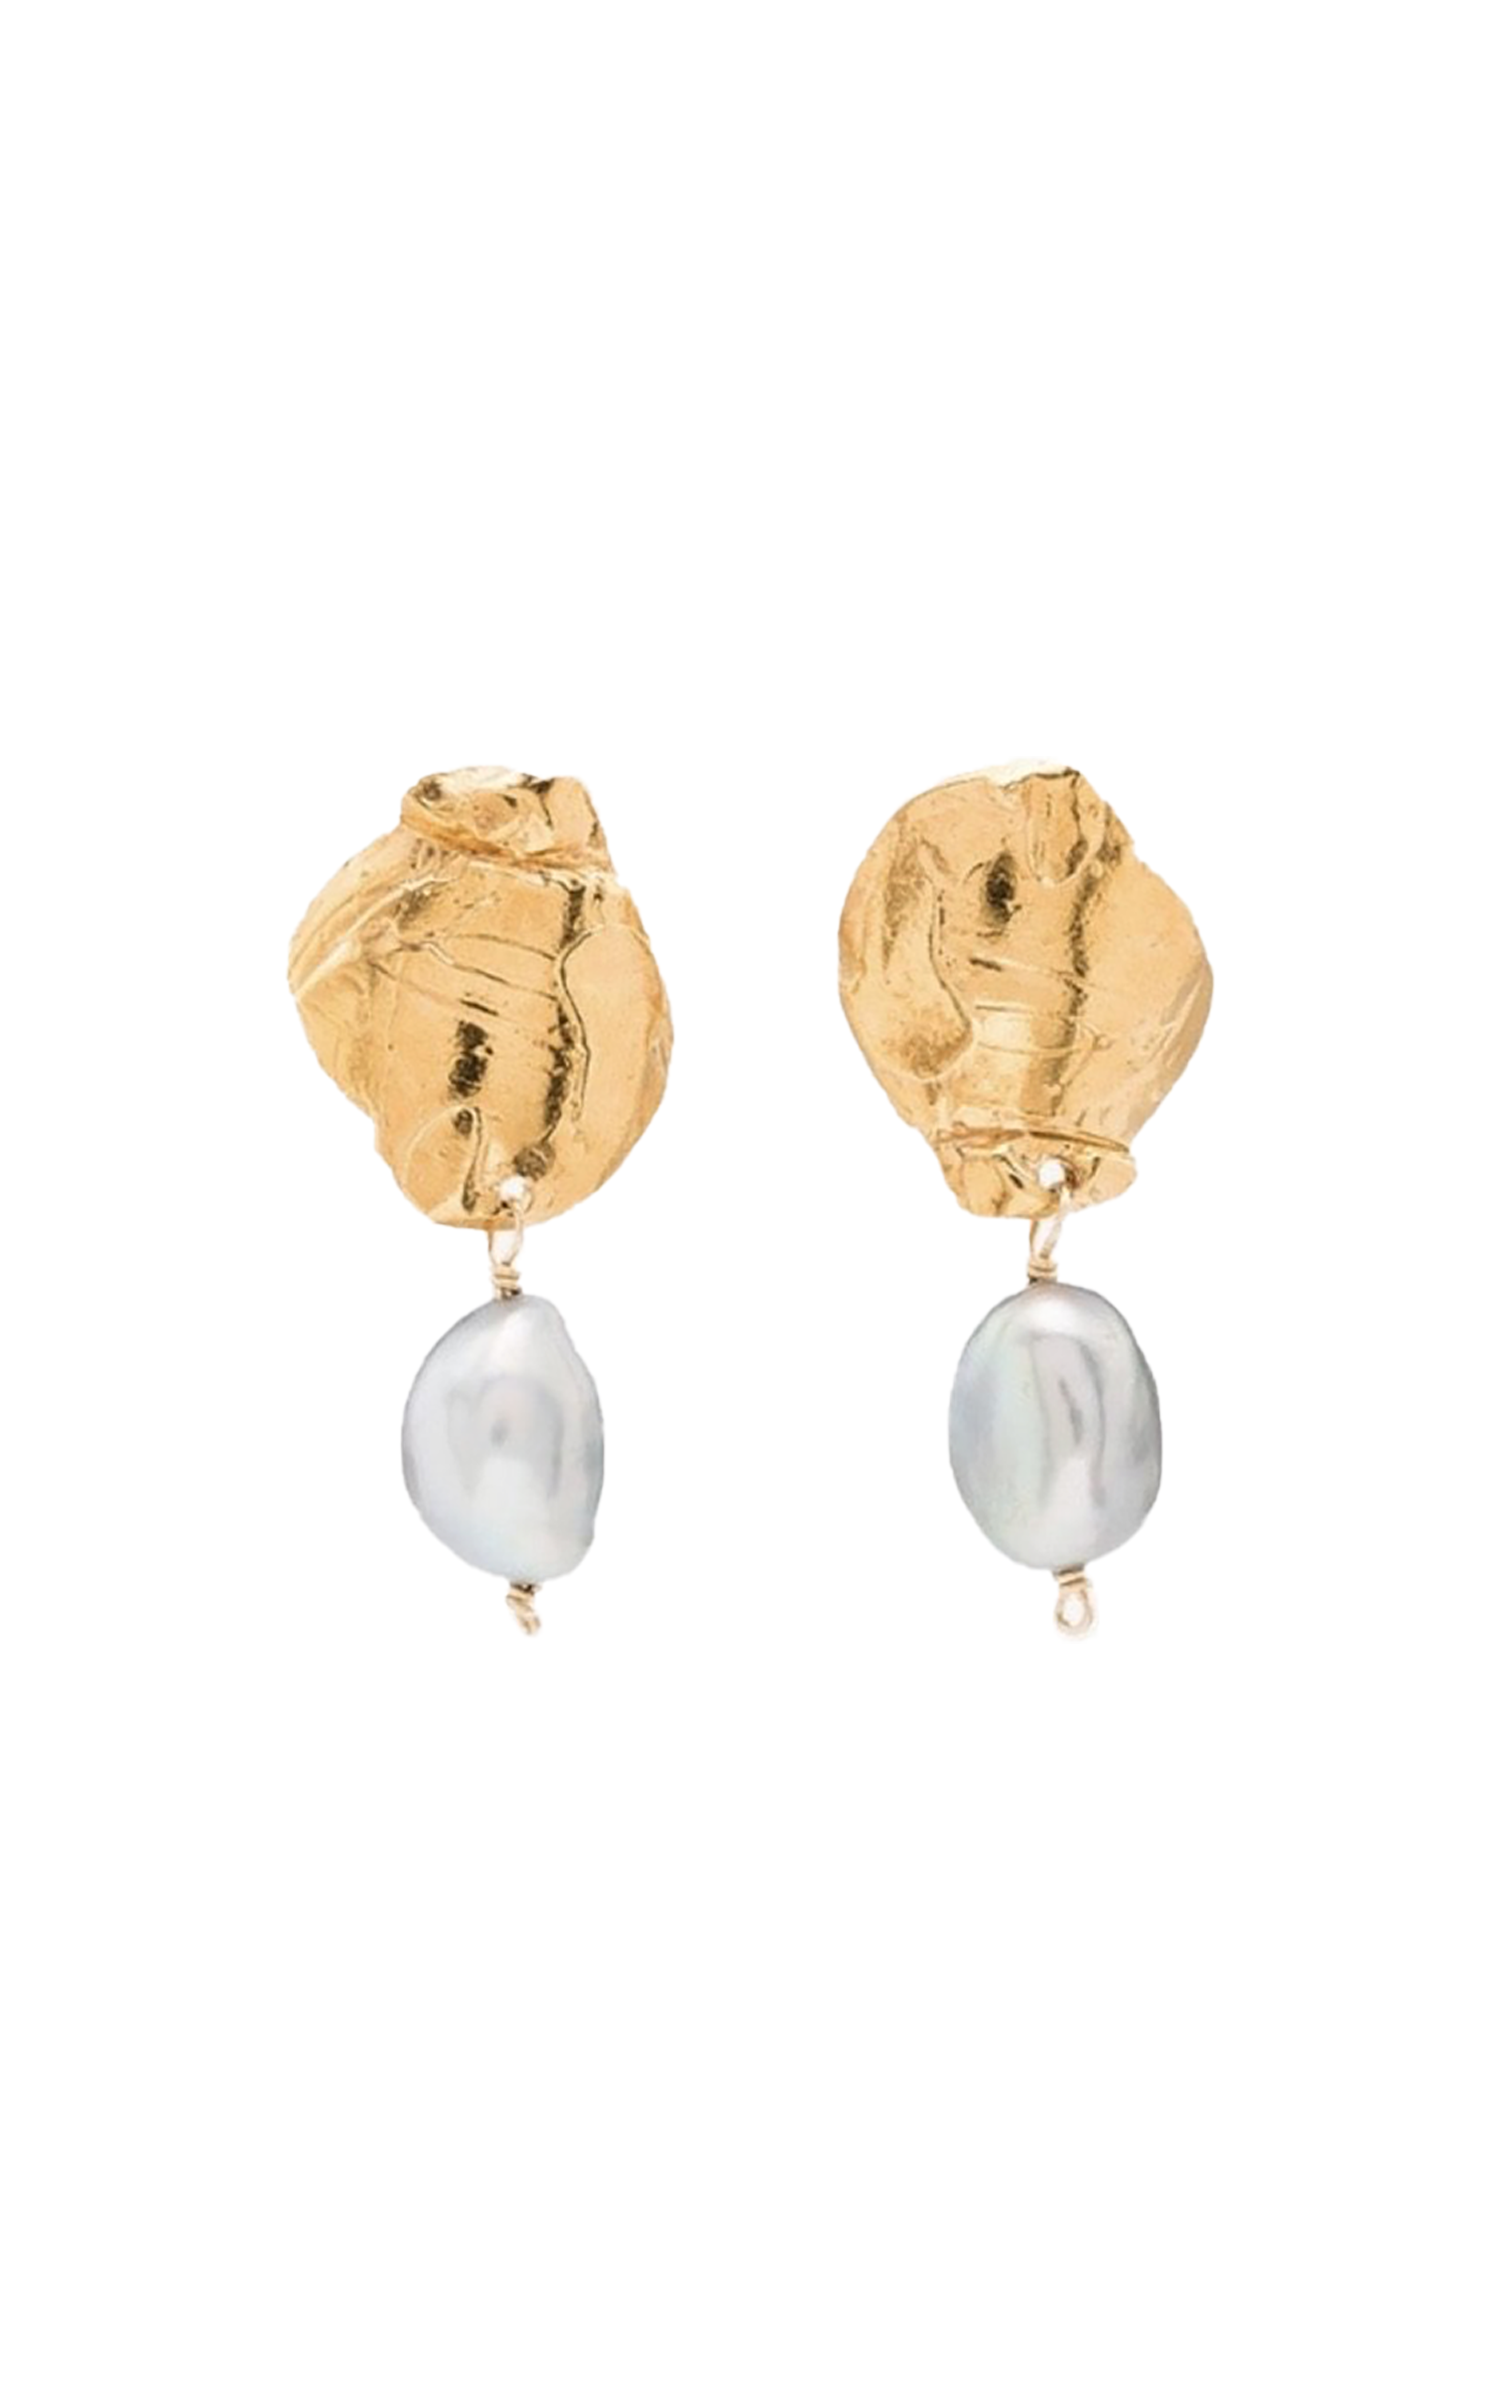 Alighieri Shadow and Pearl Earrings